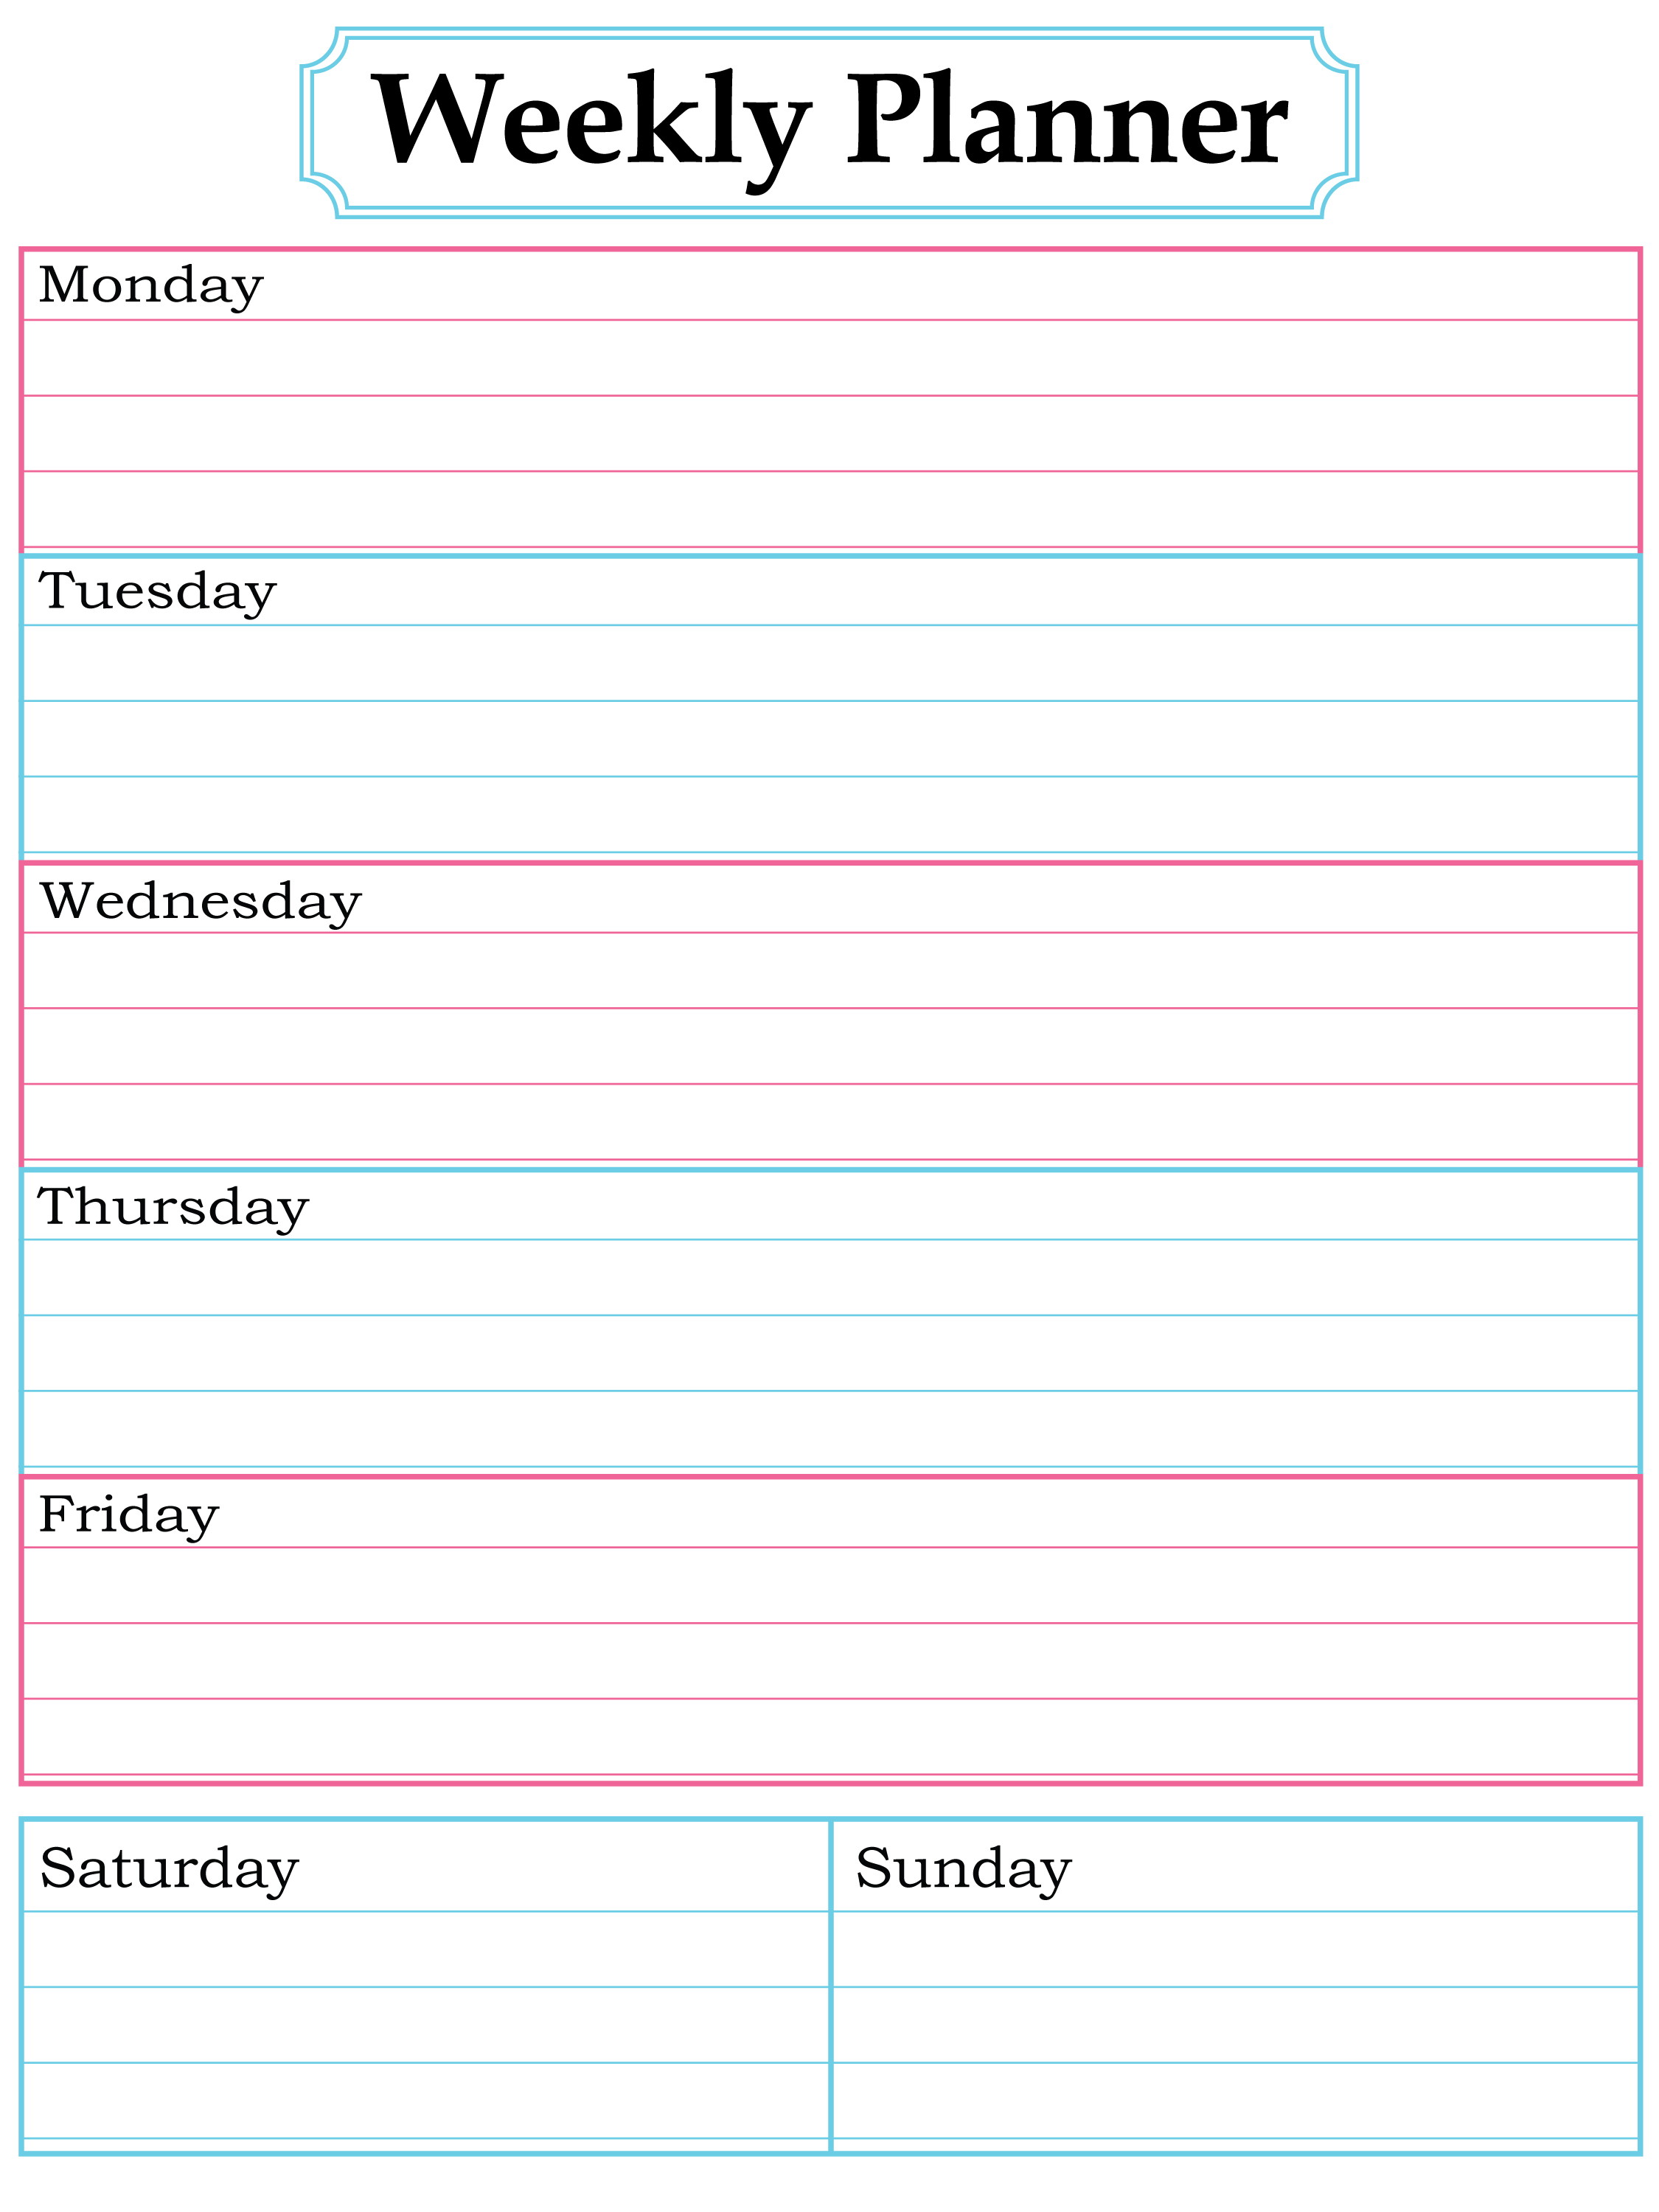 free weekly calendar template 2015 Ideal.vistalist.co